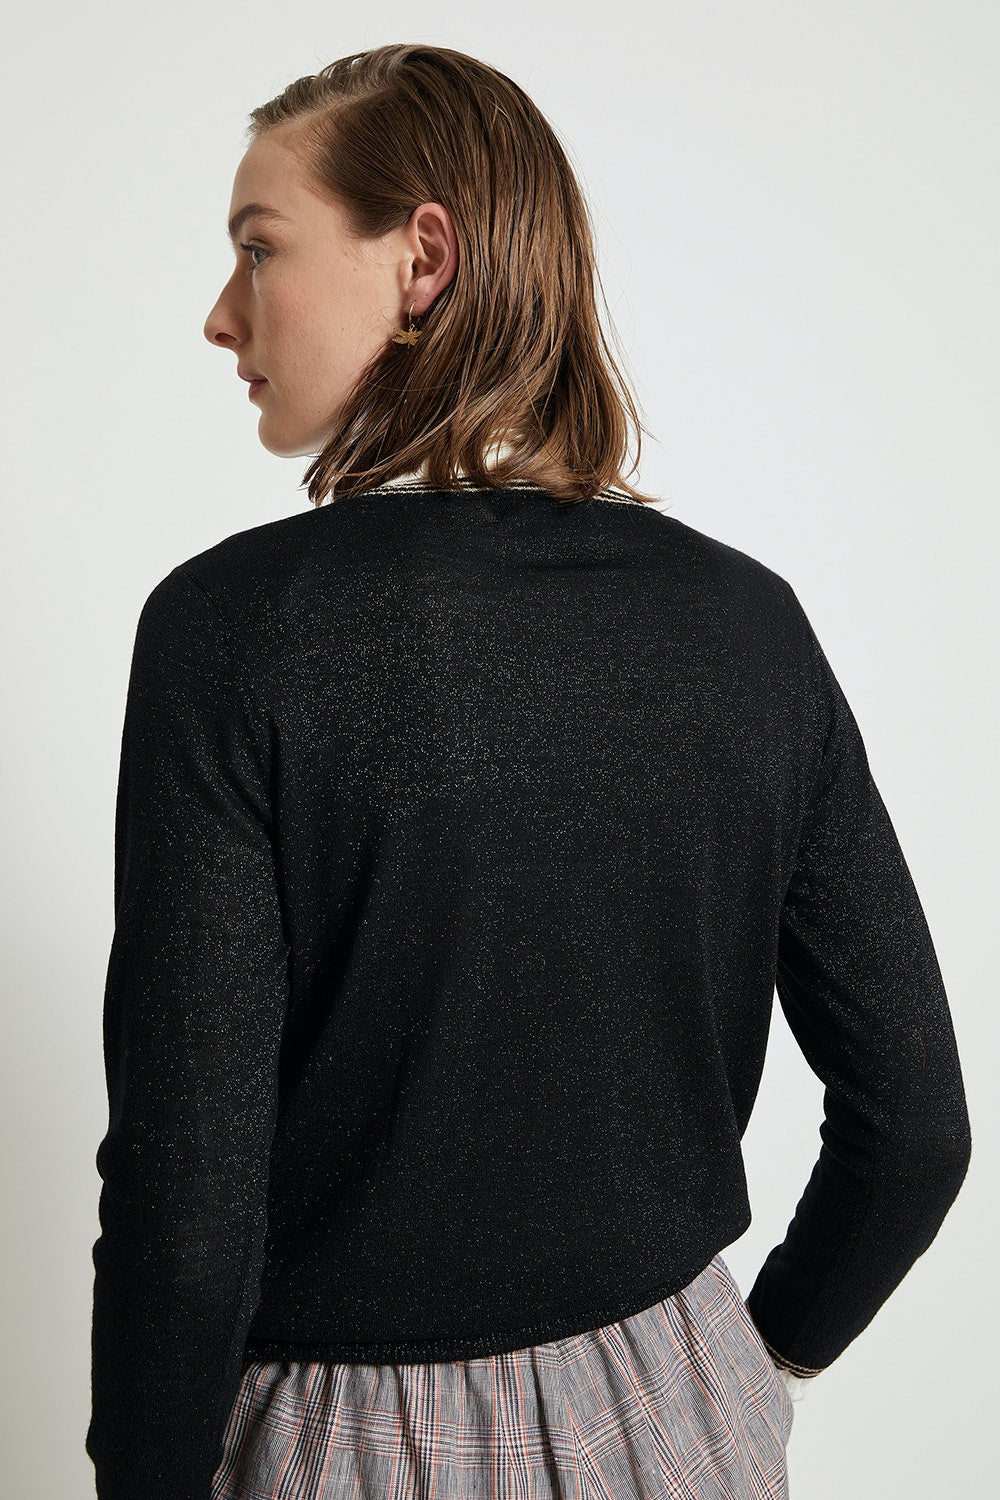 Karen Walker Apollo Knit // Black